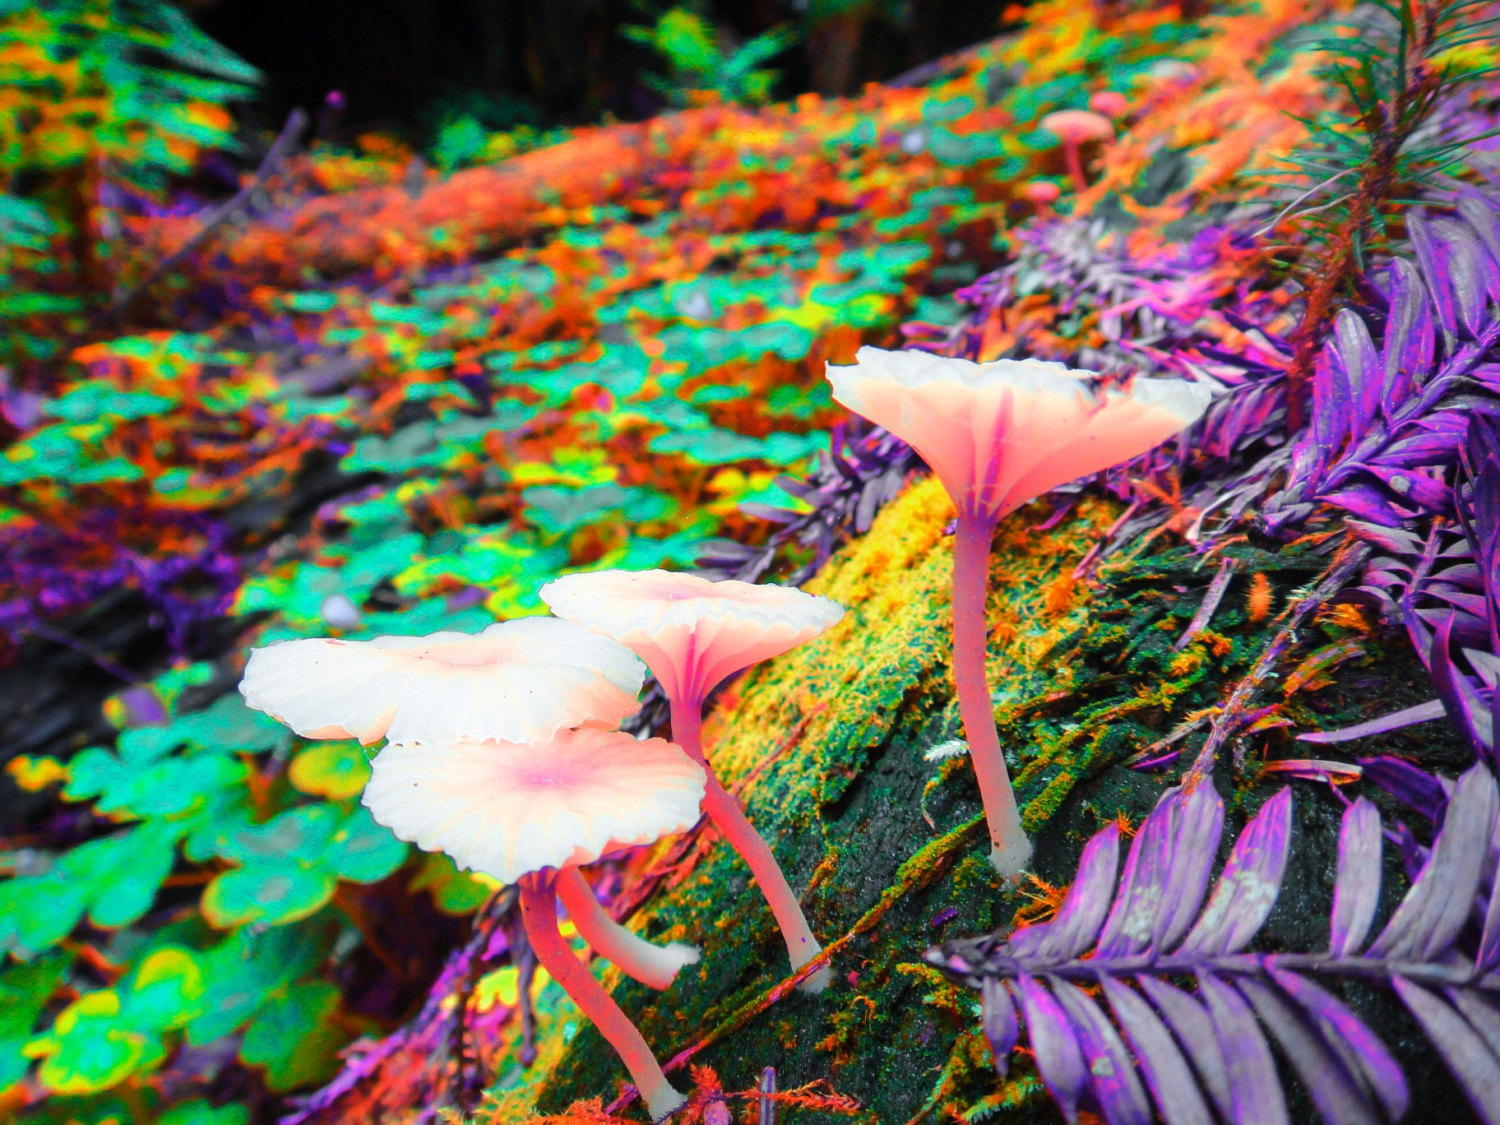 gt Nature gt Flowers amp Plants gt Trippy Desktop Backgrounds Shrooms 1500x1125